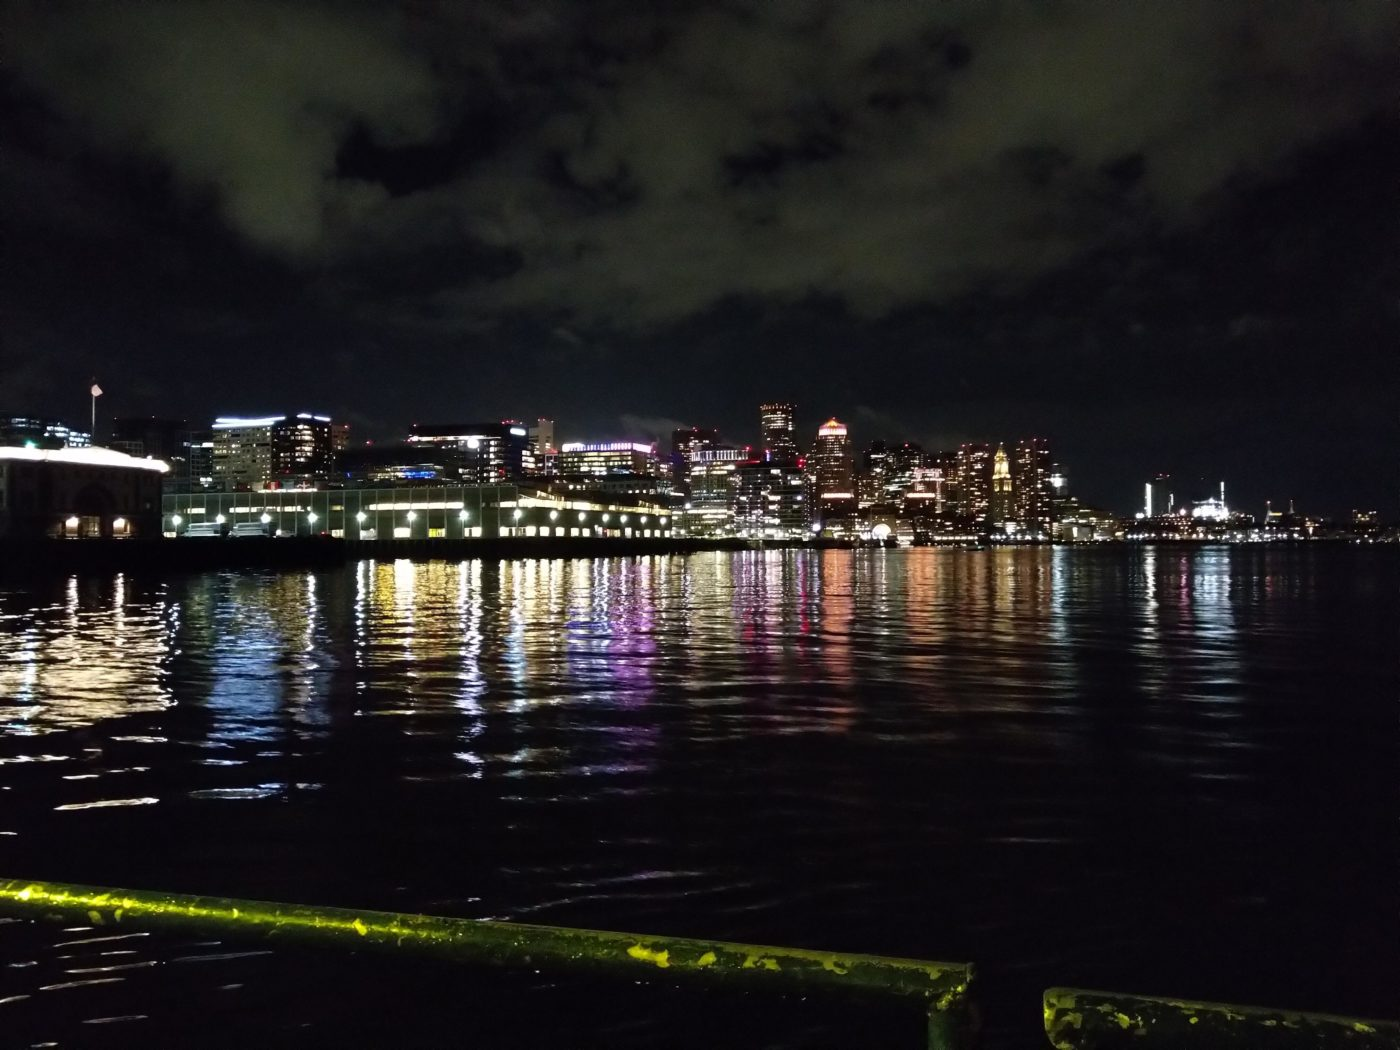 A picture of the Boston skyline from a boat.